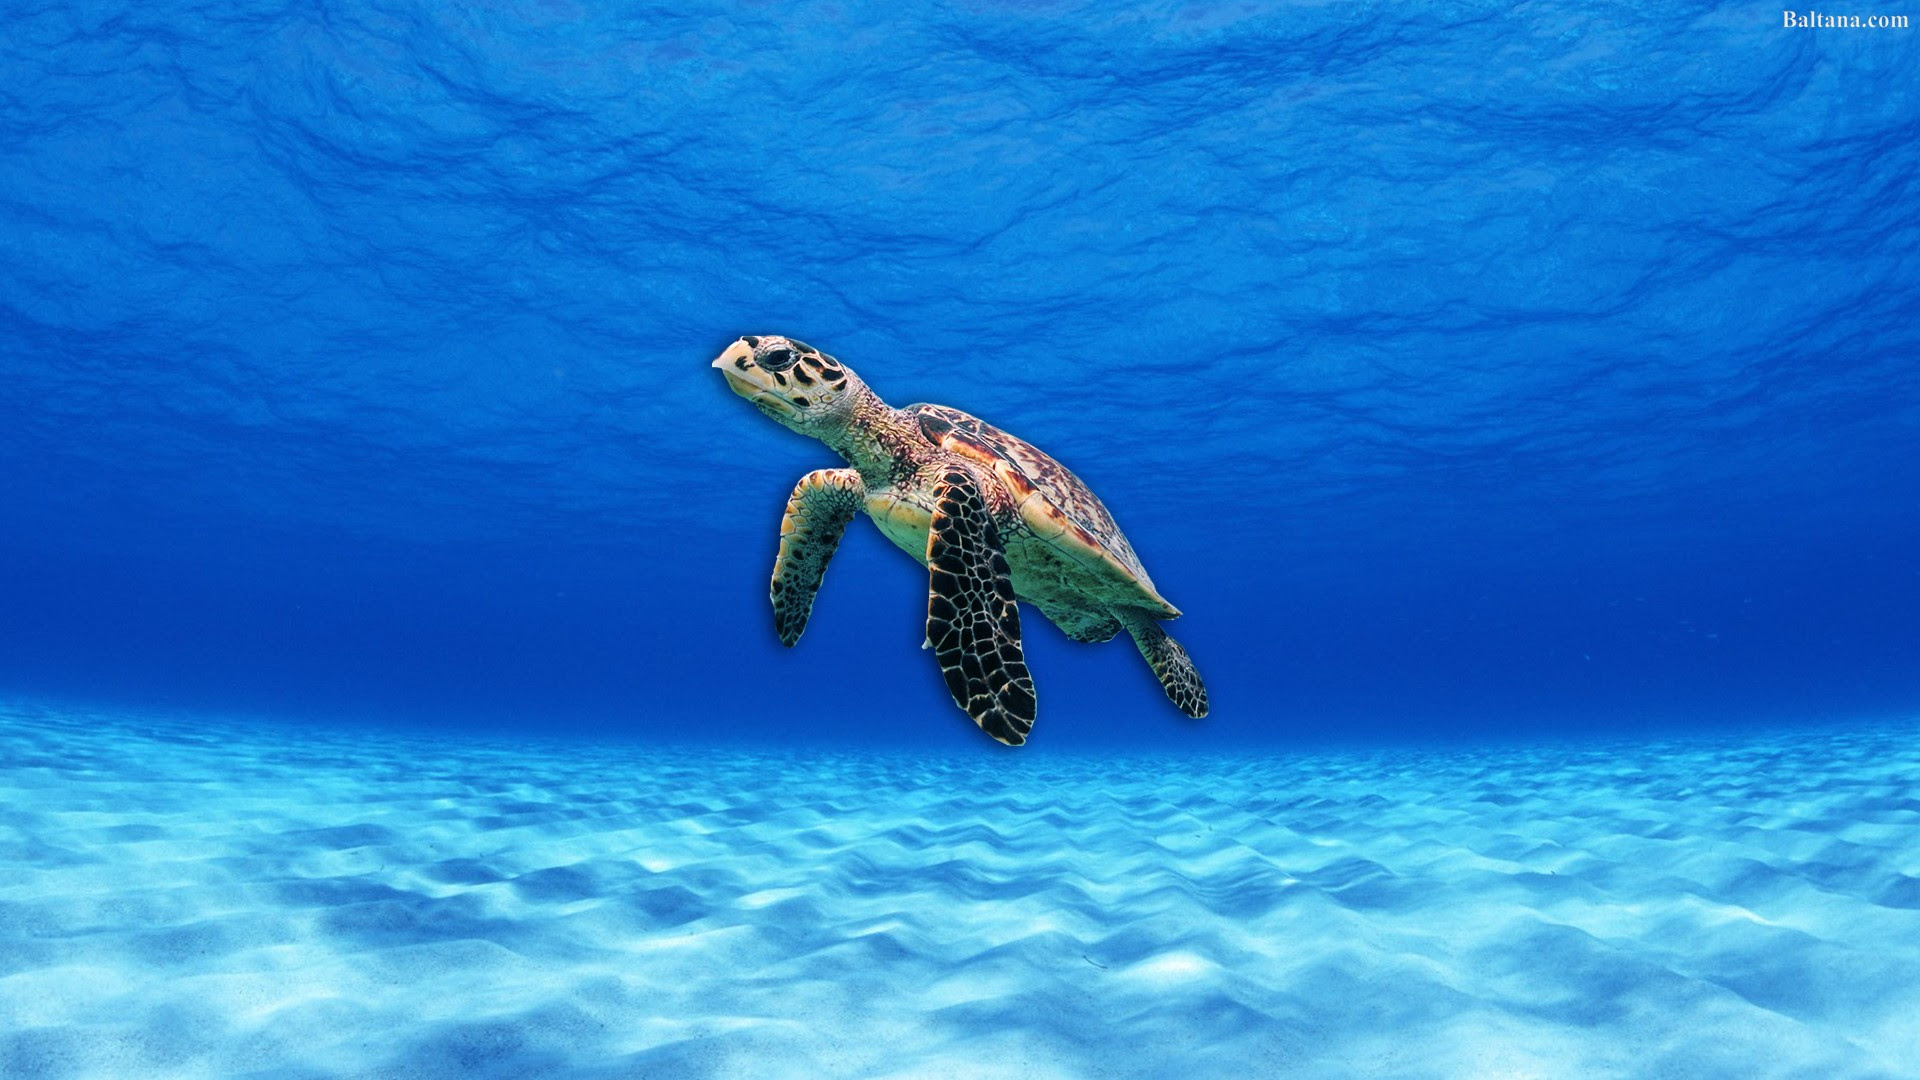 Turtle Wallpapers Hd Backgrounds Images Pics Photos Free Download